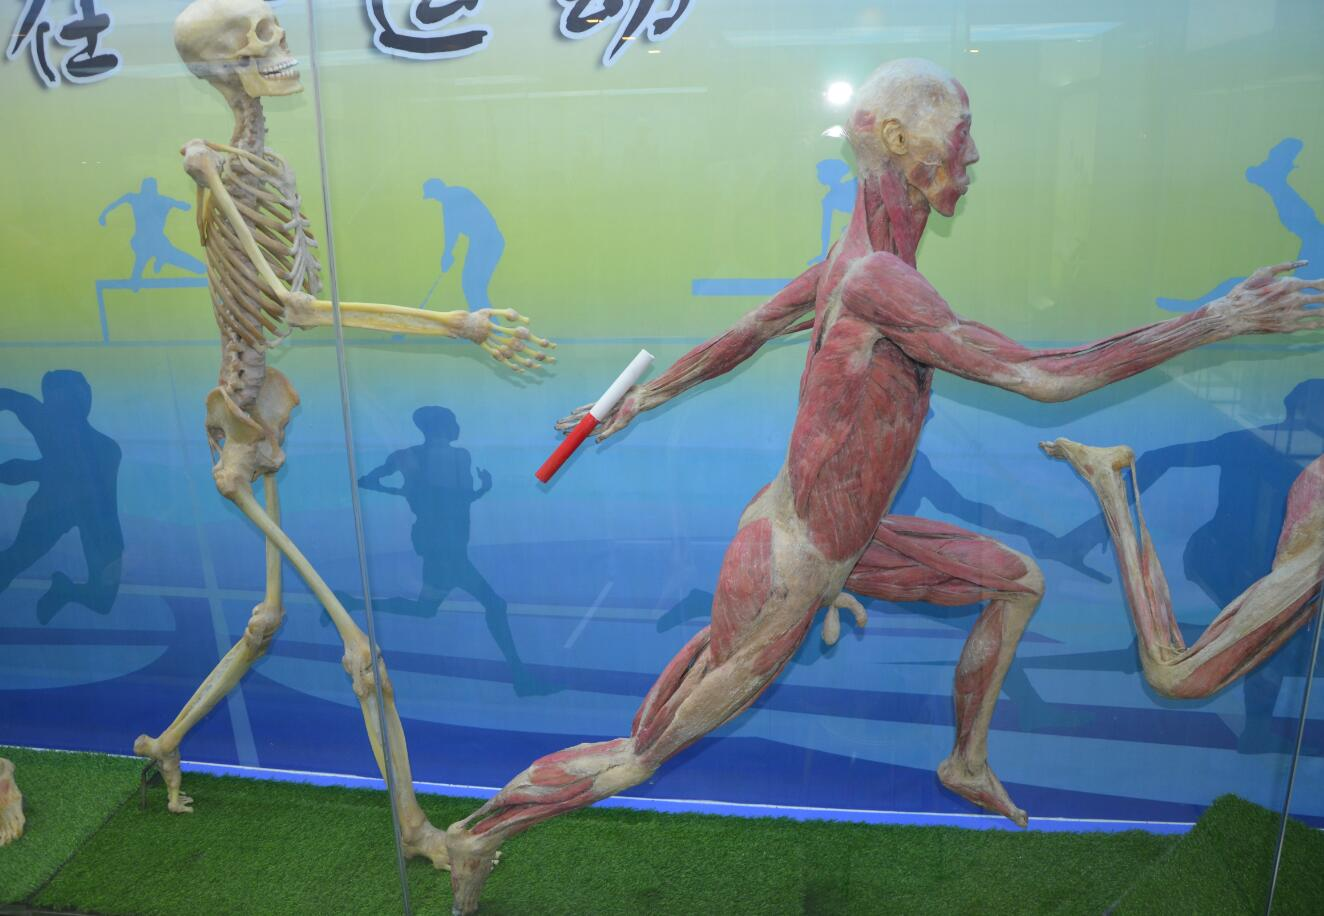 Runner plastination of human body